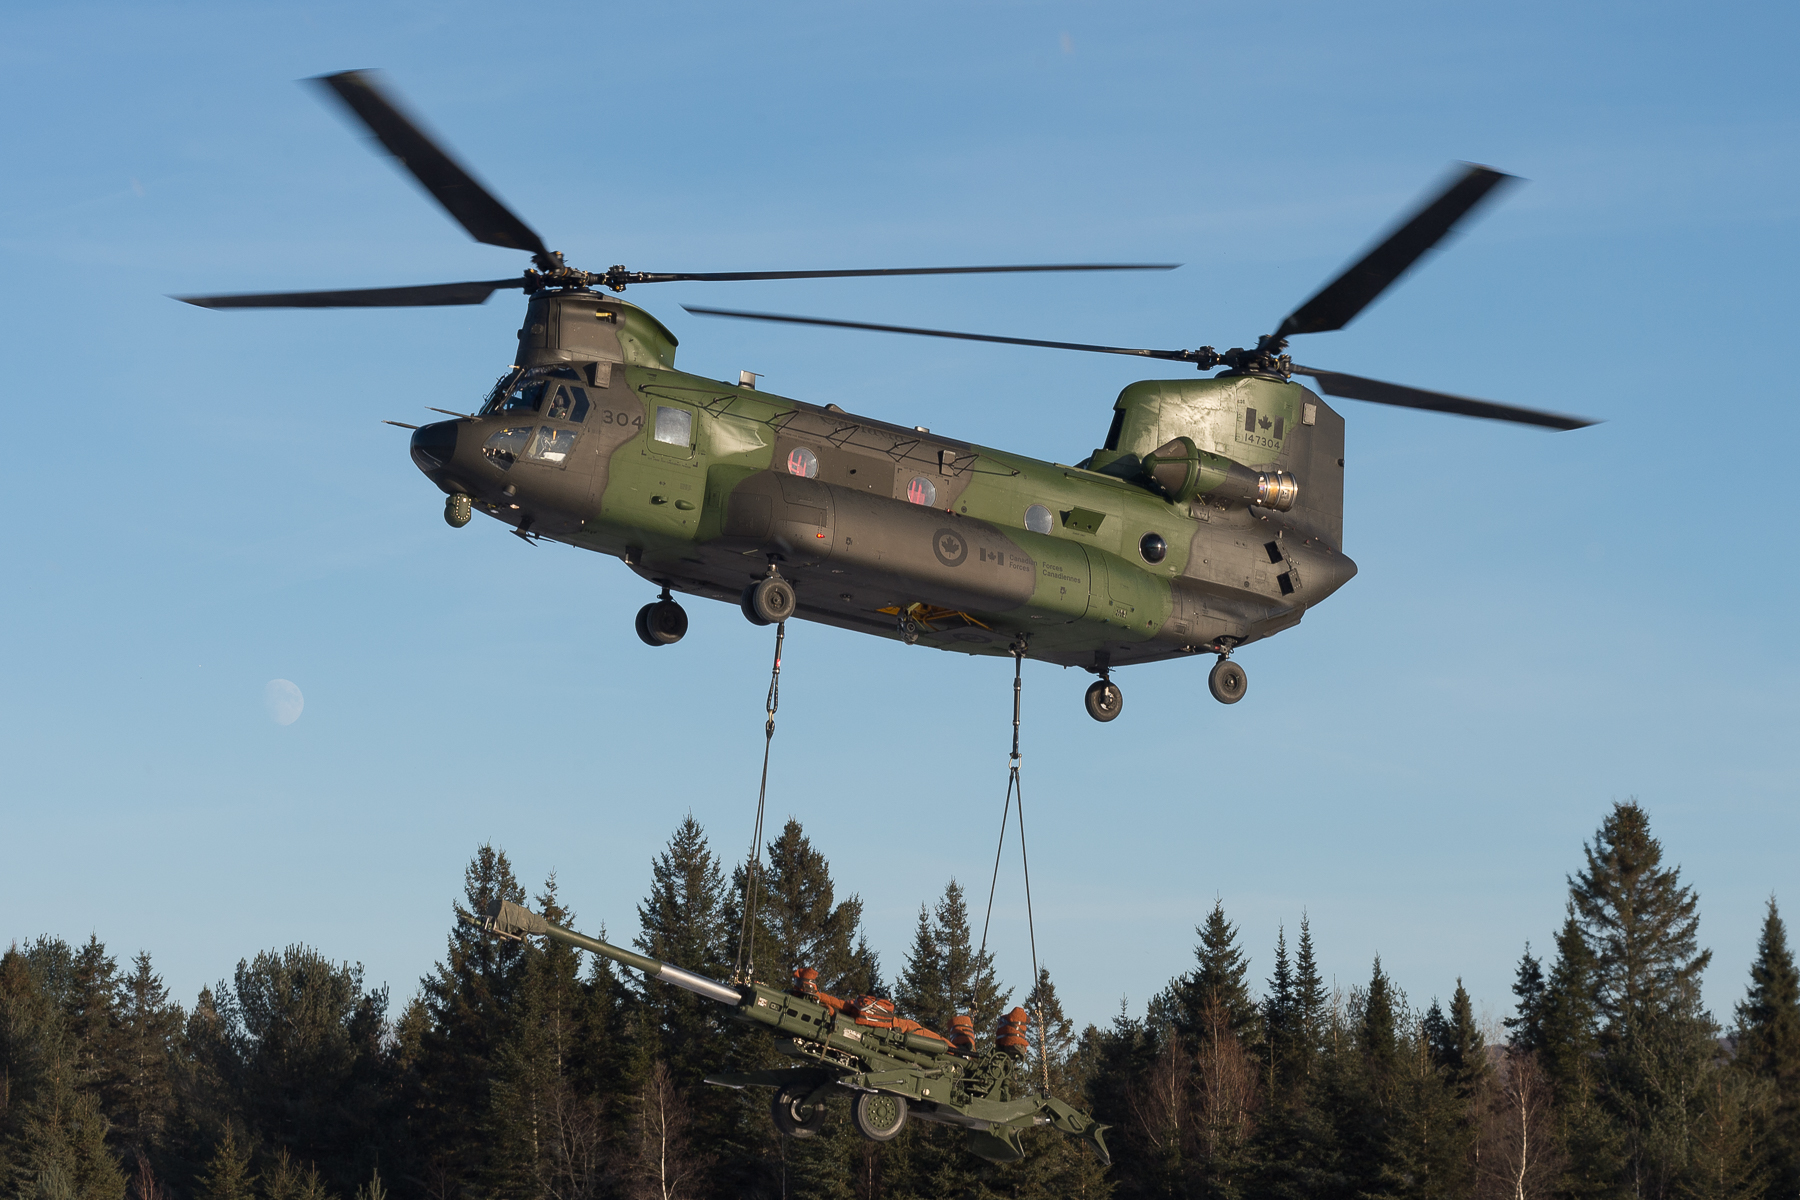 IMG:http://www.rcaf-arc.forces.gc.ca/assets/AIRFORCE_Internet/images/news-nouvelles/2015/04/vl02-2014-0025-014.jpg